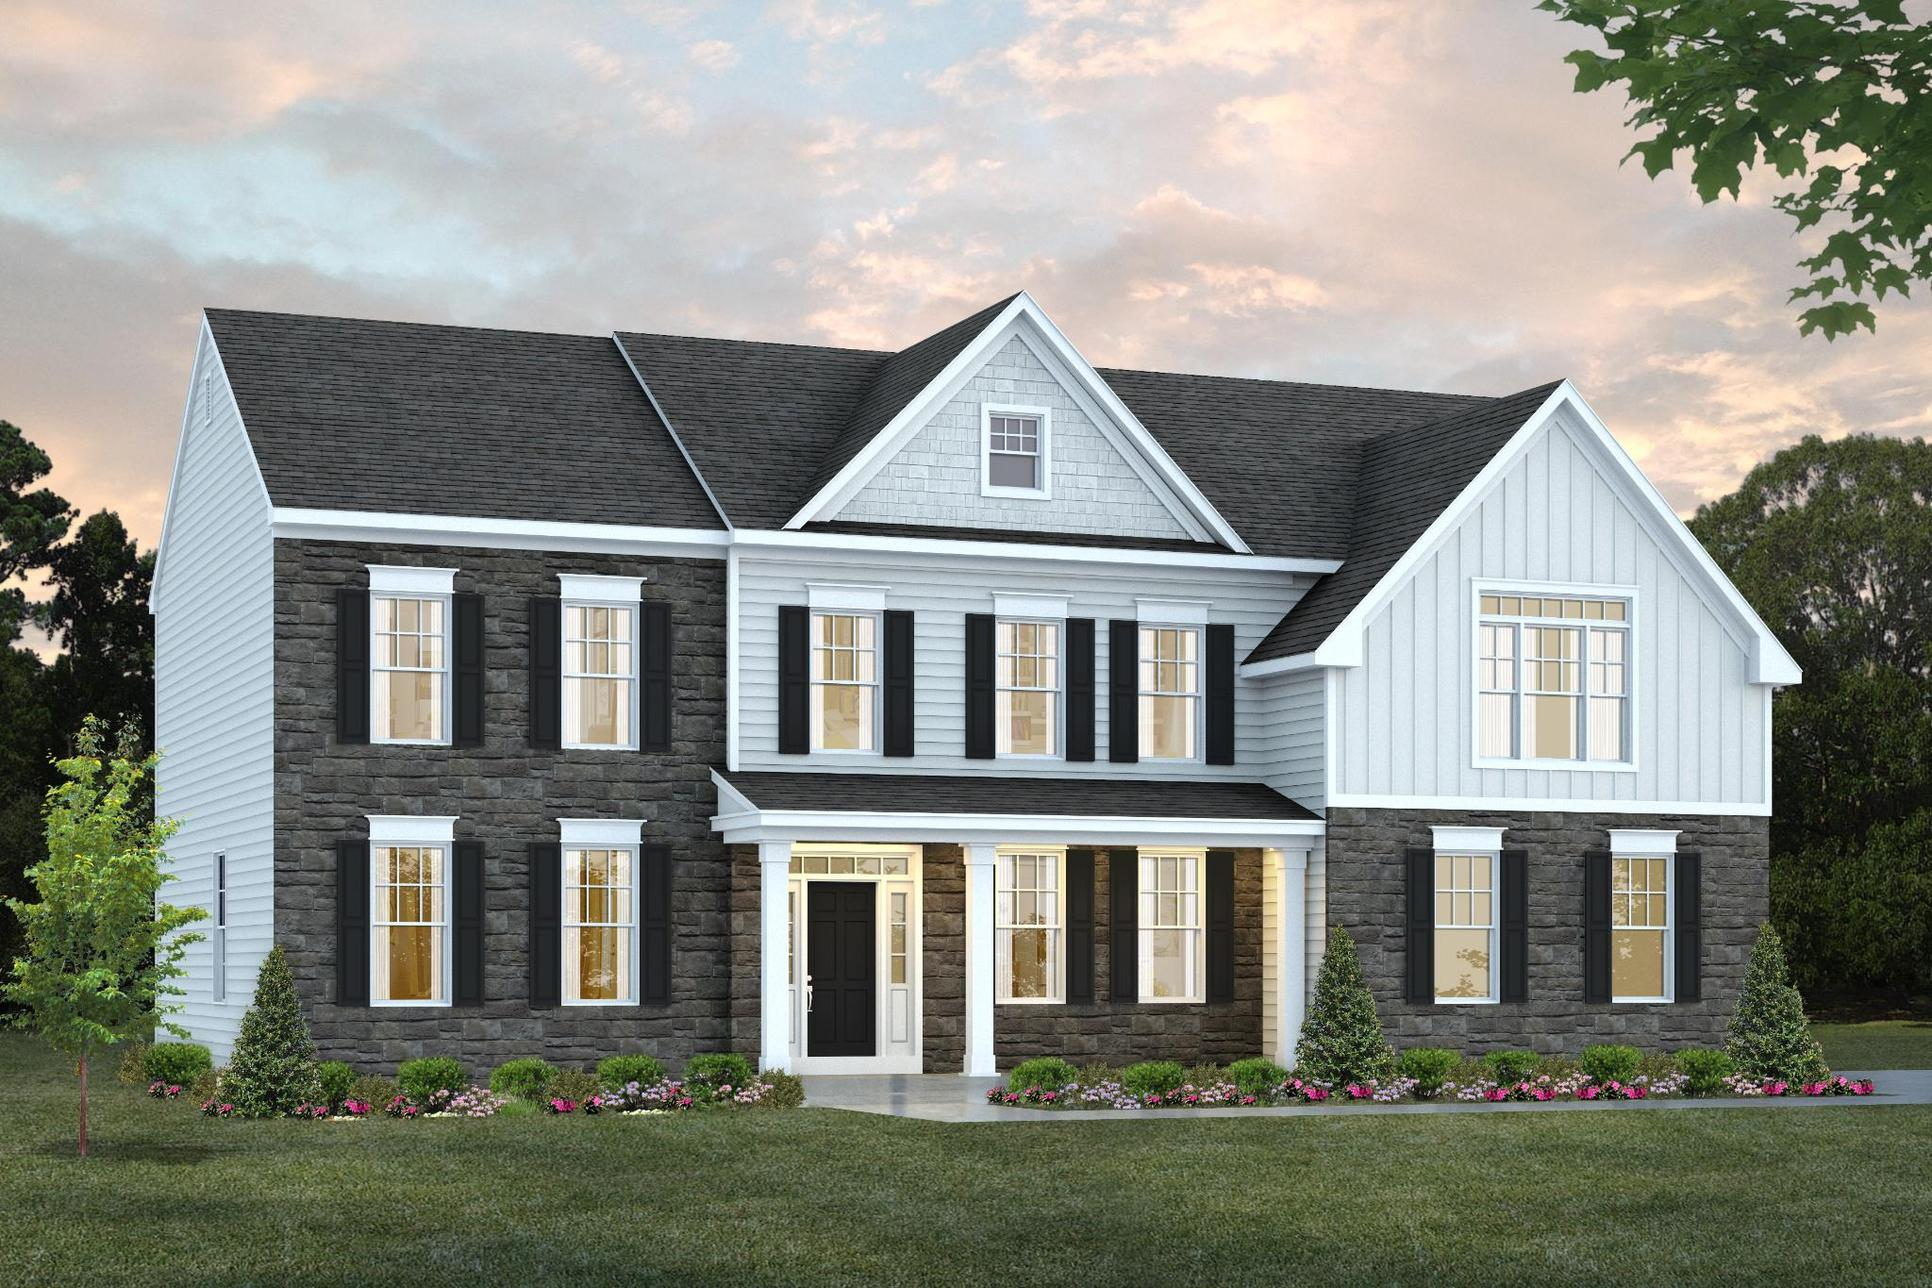 Rendering of a large single-family home with white siding and brown stone siding:Ashford's Luxury Single-Family Homes